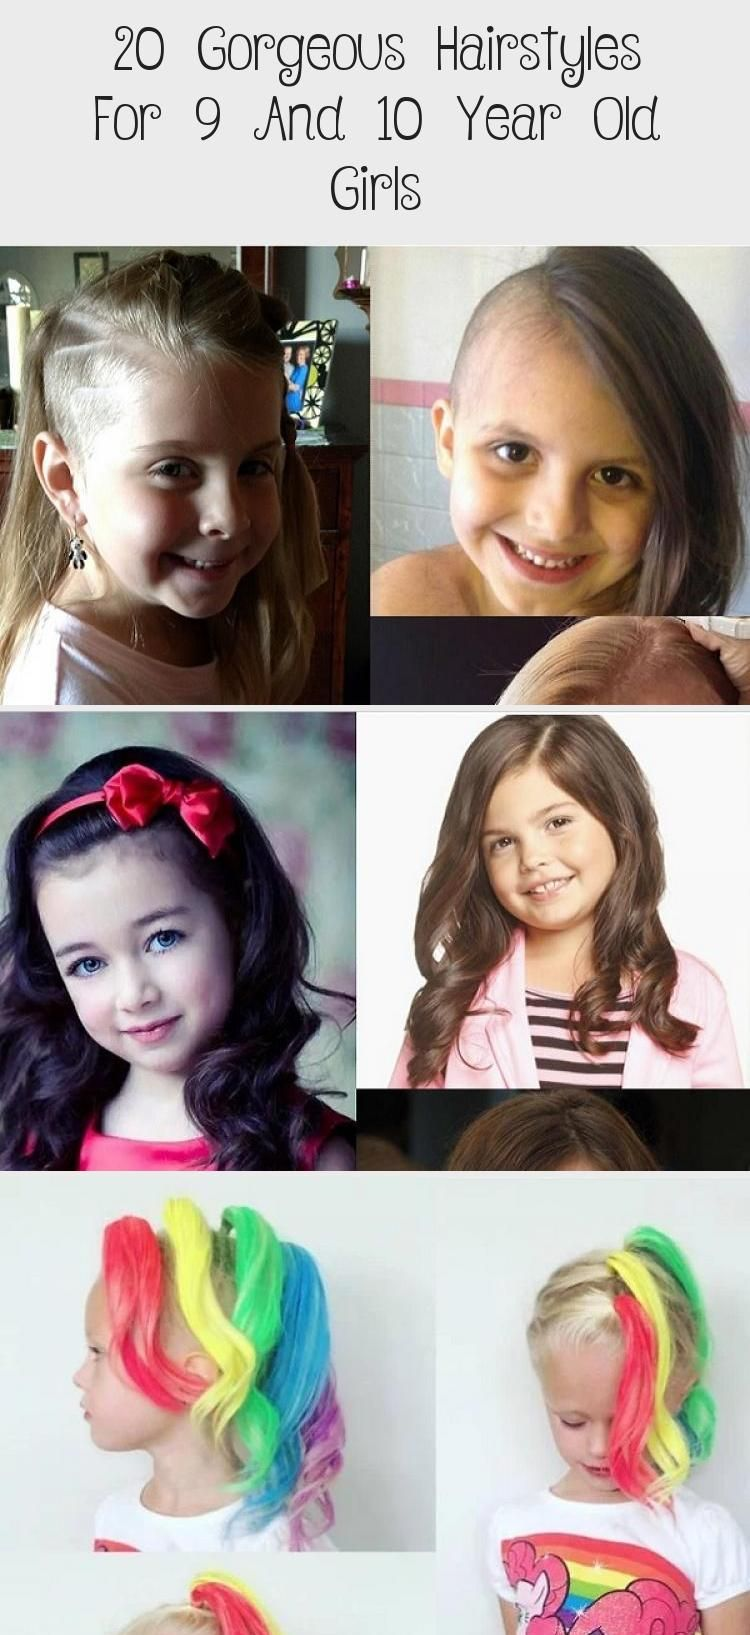 20 Gorgeous Hairstyles For 9 And 10 Year Old Girls Child Insider Cuteeverydayhairstyles Everydayhairstyles Forte In 2020 Gorgeous Hair Hair Styles Girl Hairstyles